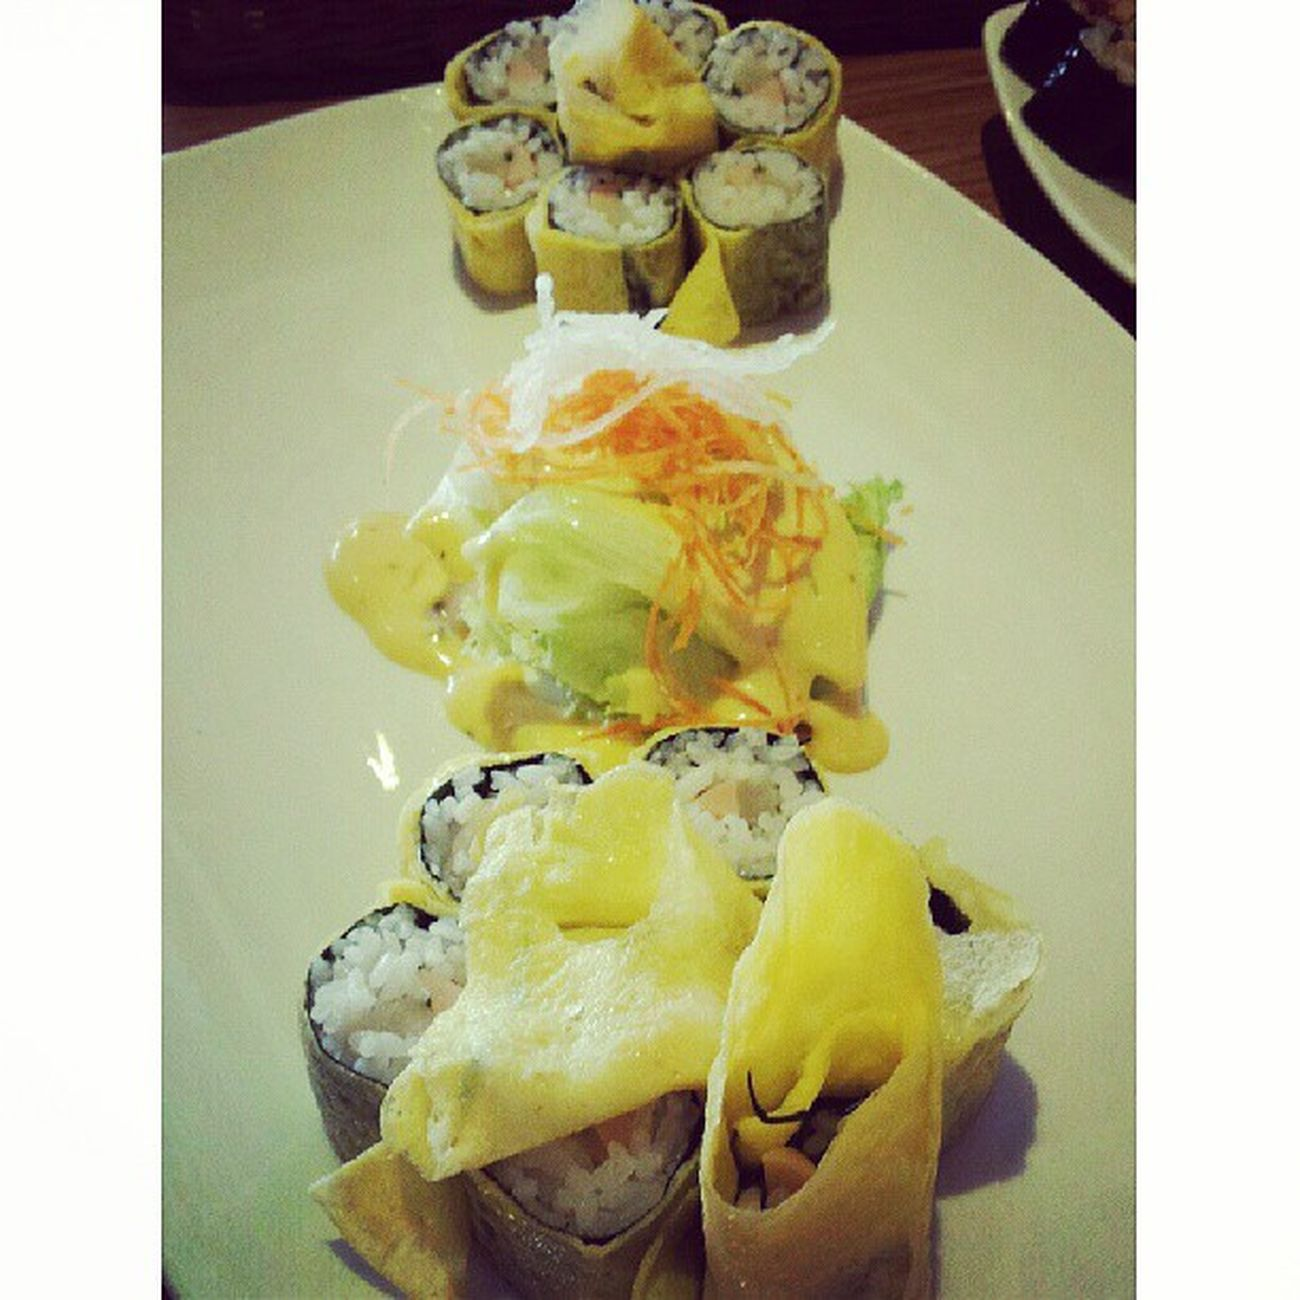 Eeg mari Schoolfood Centralparkmall Lunch Japanfood japan instafood jakarta indonesia egg sushi